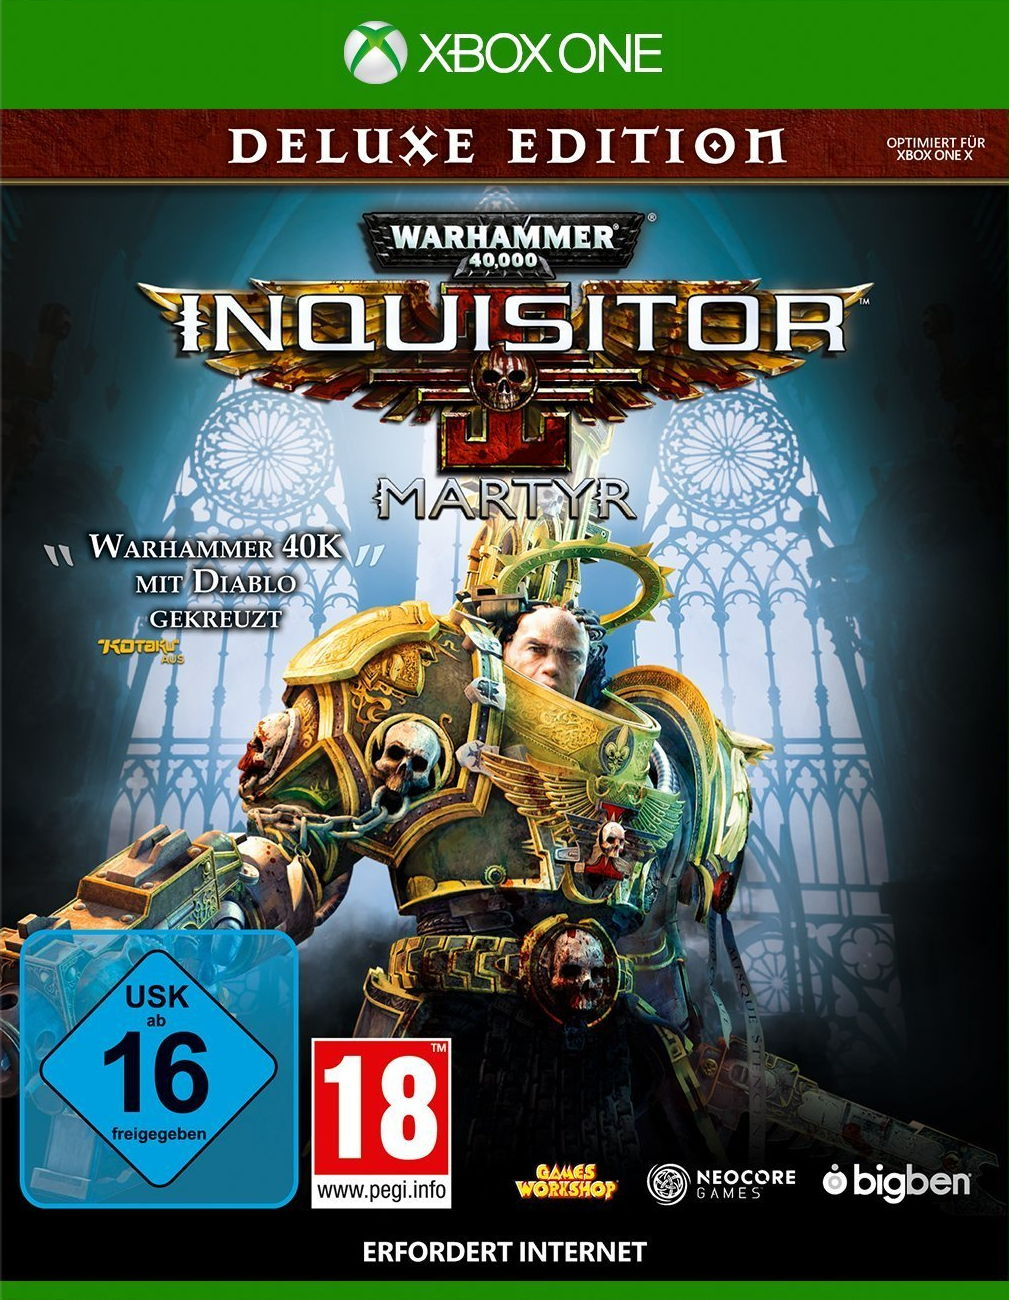 Warhammer 40.000: Inquisitor Martyr - DeLuxe Edition